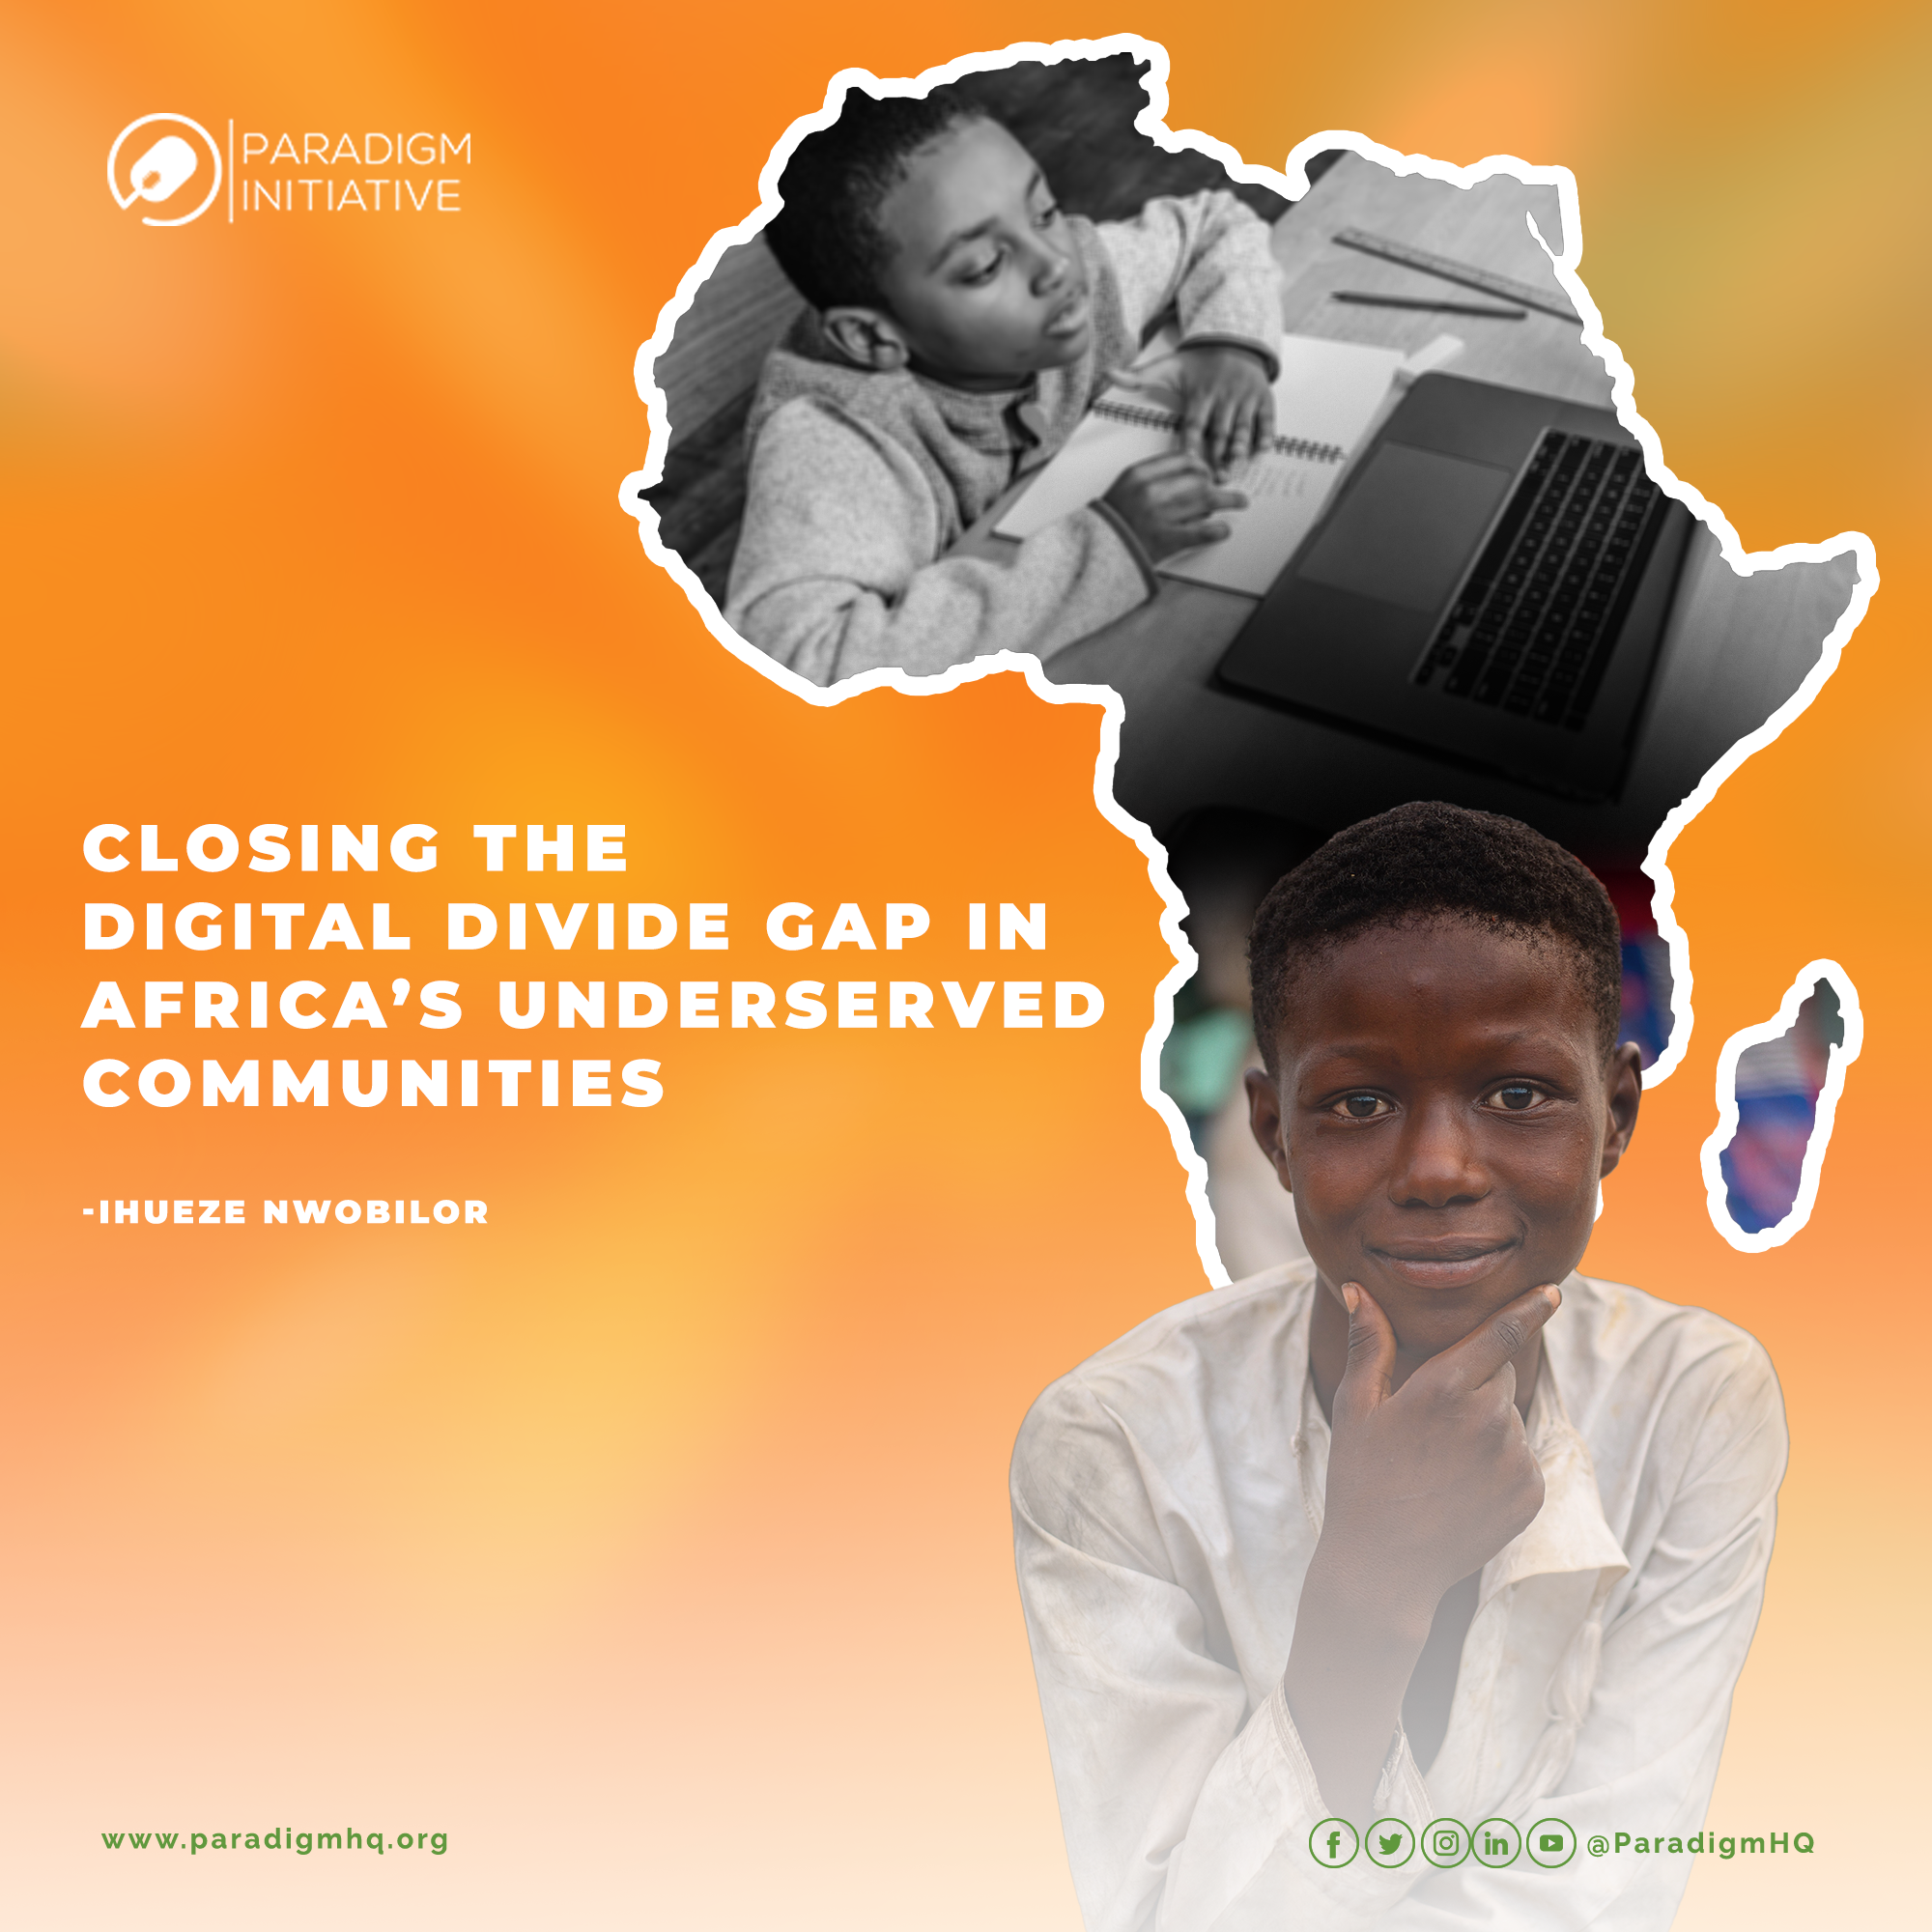 CLOSING THE DIGITAL DIVIDE GAP IN AFRICA'S UNDERSERVED COMMUNITIES